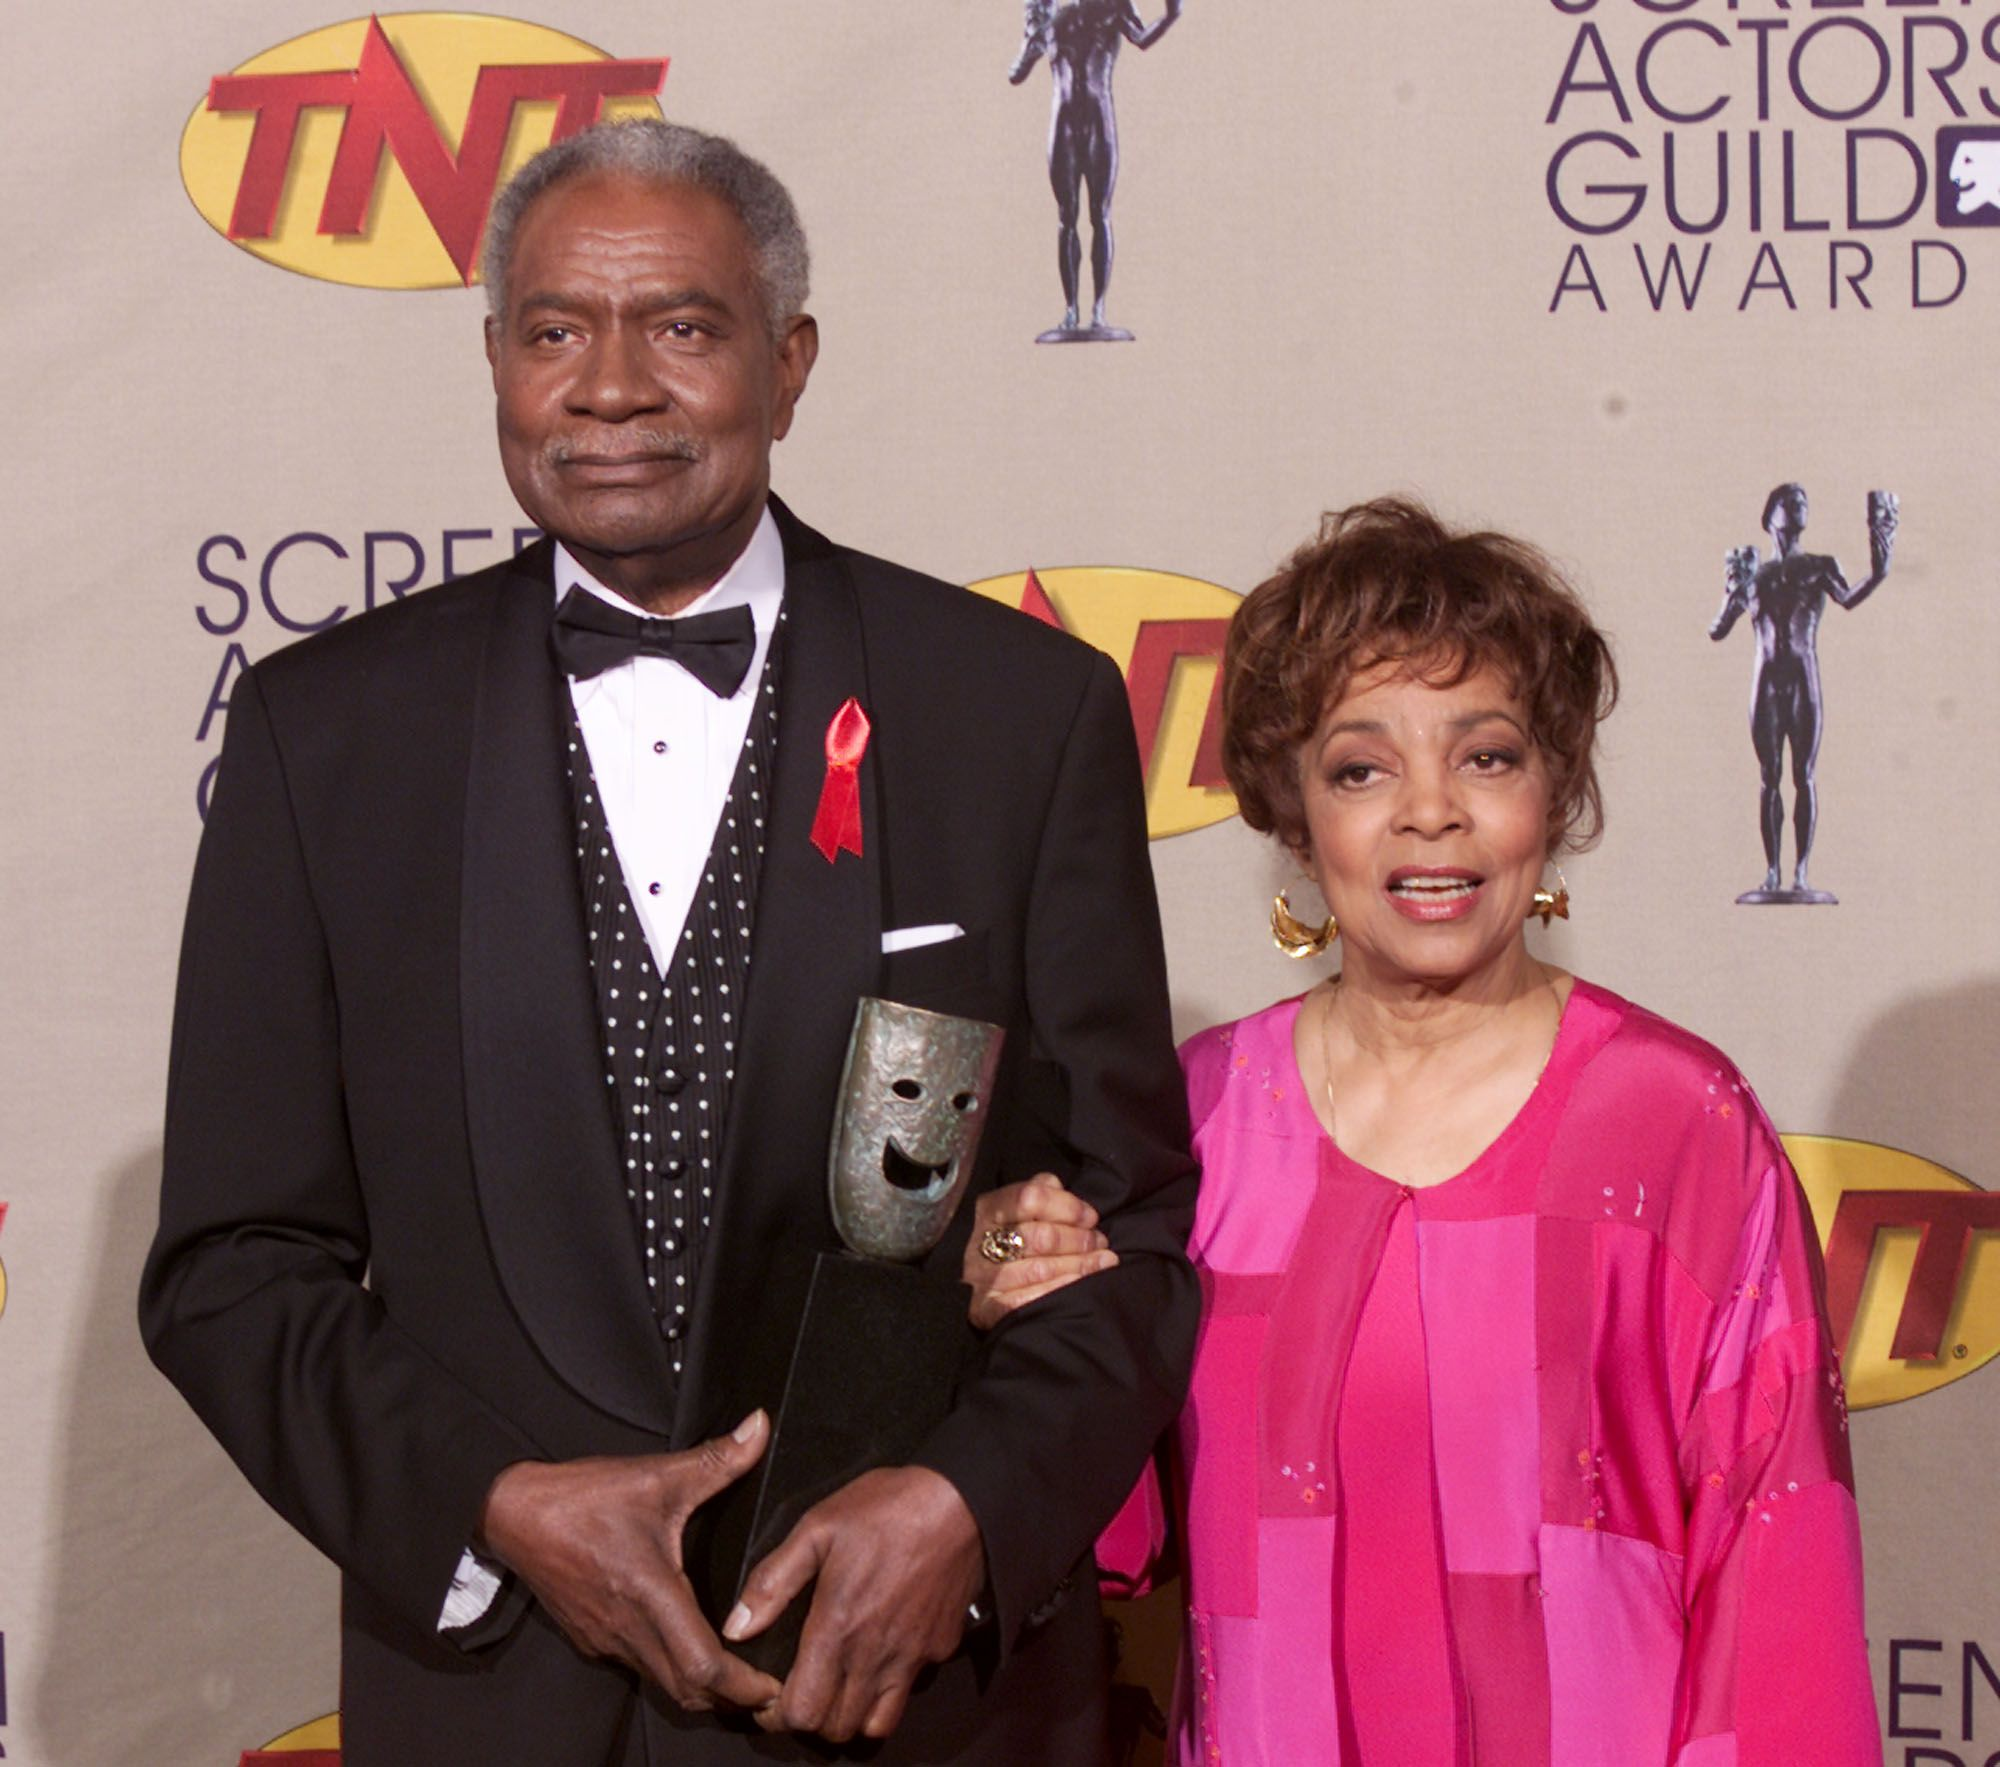 Ossie Davis and Ruby Dee backstage at the 7th Annual Screen Actors Guild Awards at the Shrine Auditorium on March 11, 2001 | Photo: Getty Images